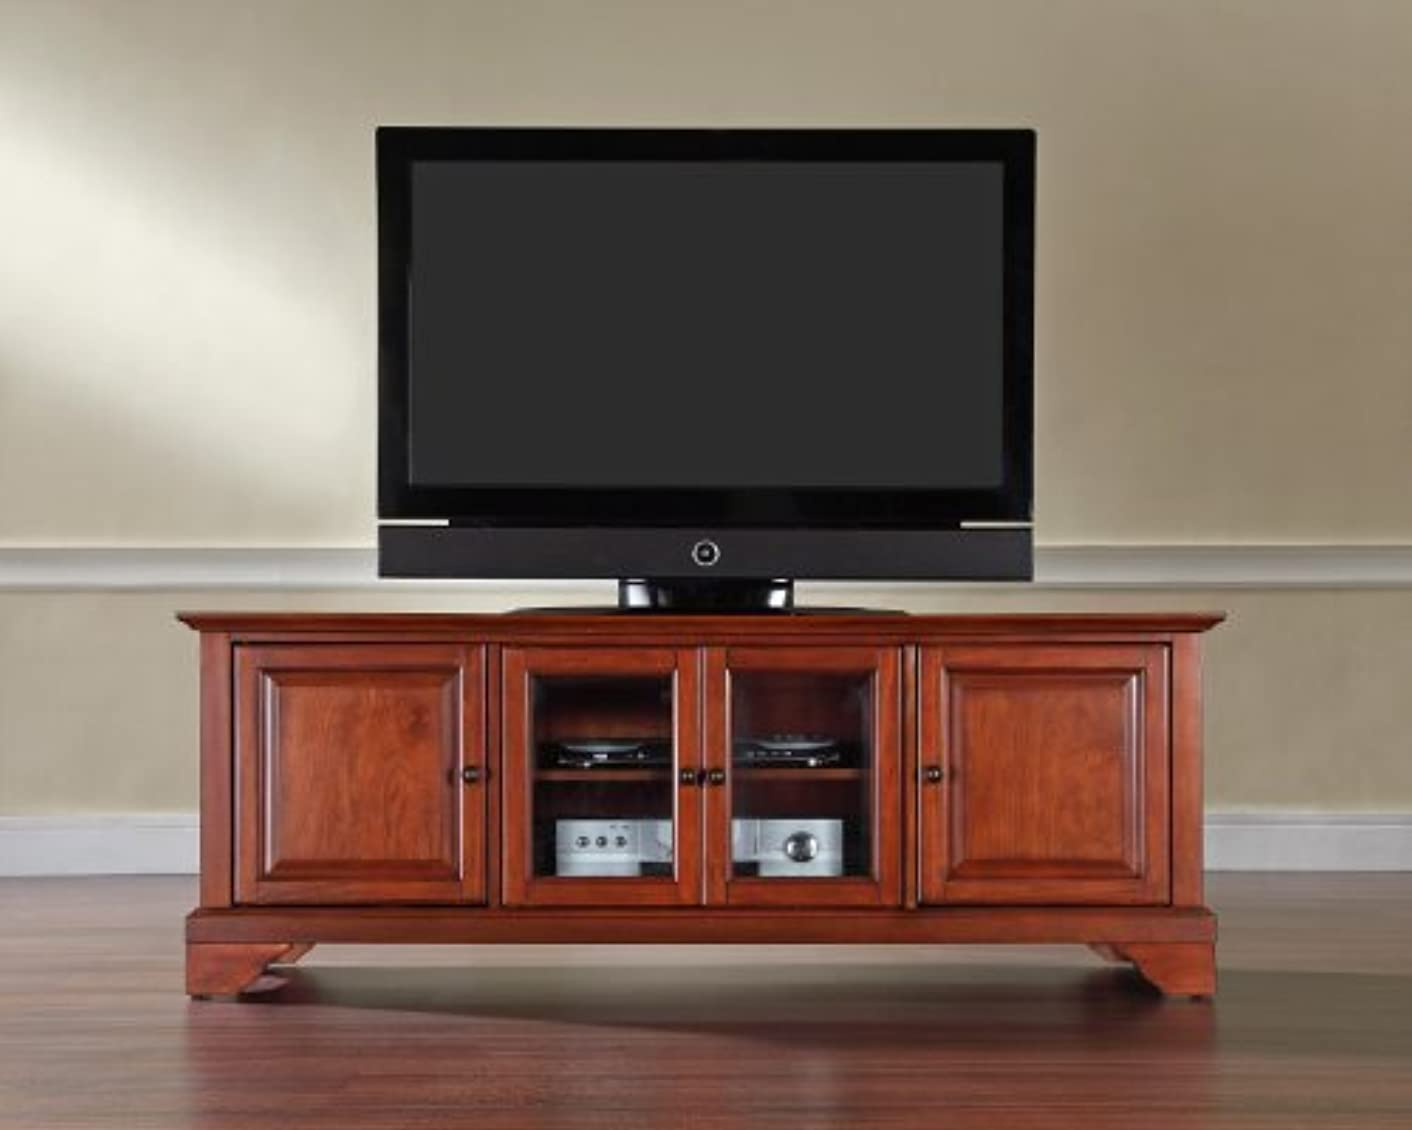 ウイルス現実アラブサラボCrosley Furniture LaFayette 60-inch Low-Profile TV Stand - Classic Cherry [並行輸入品]